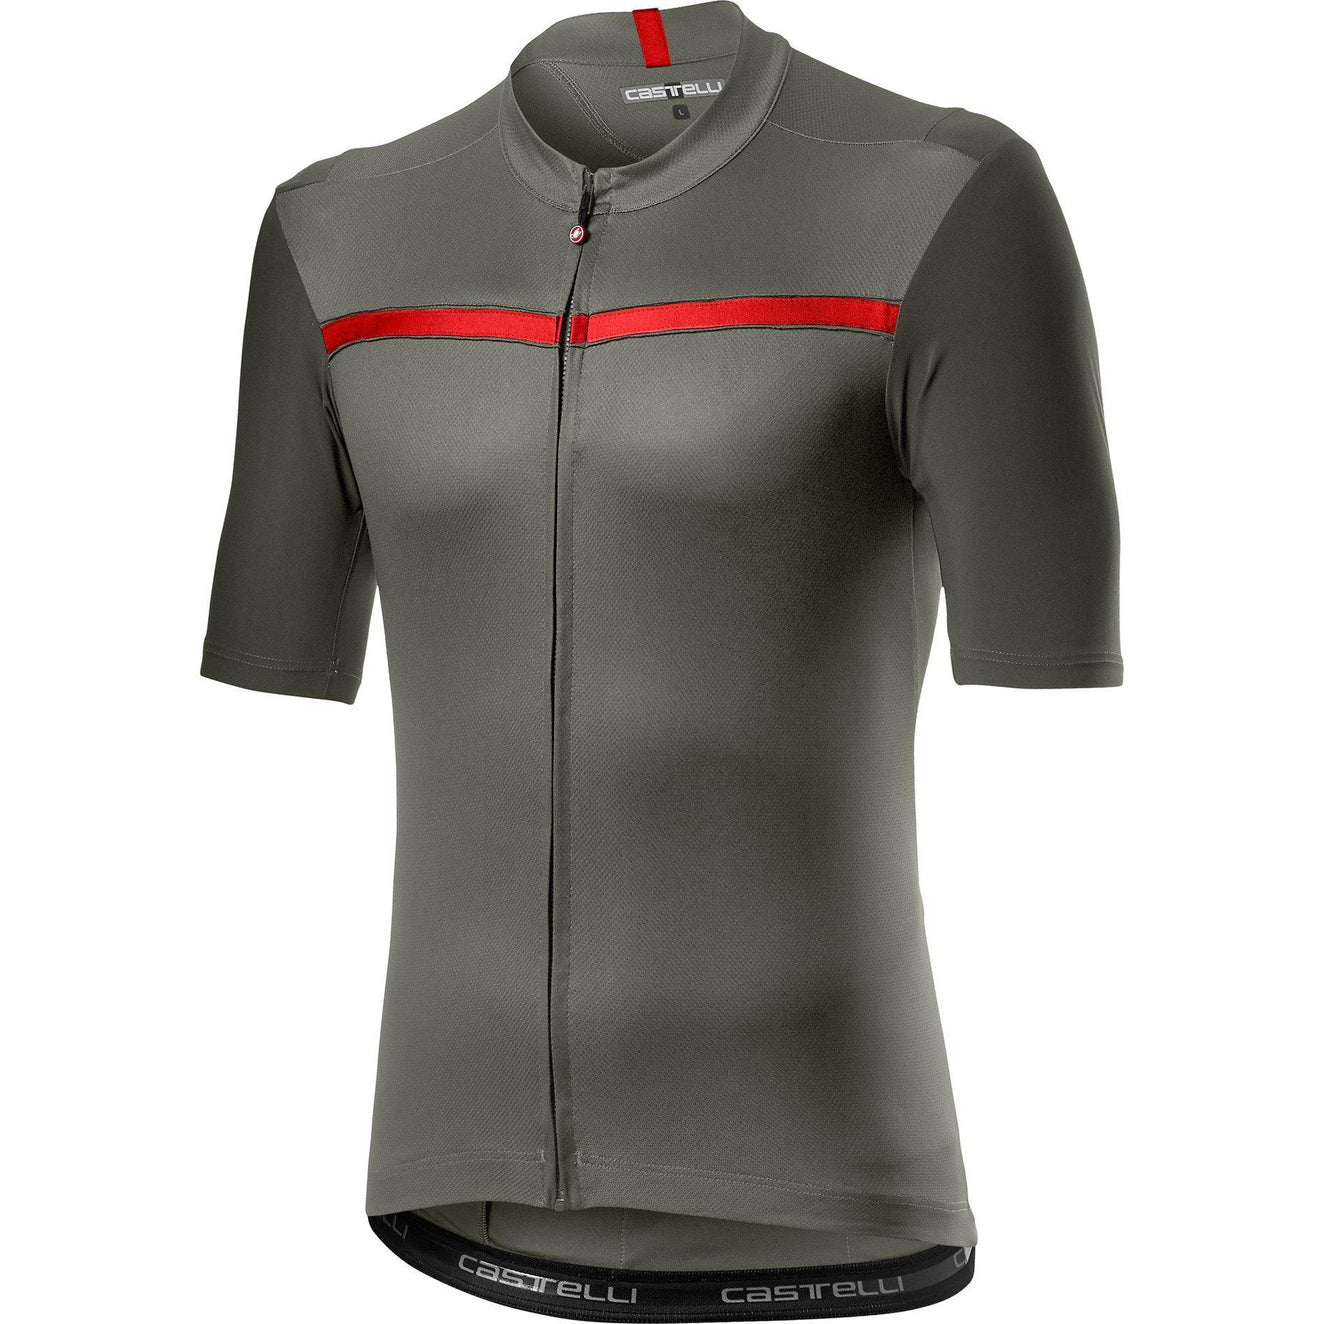 Castelli-Castelli Unlimited Jersey-Forest Gray-XS-CS200230891-saddleback-elite-performance-cycling